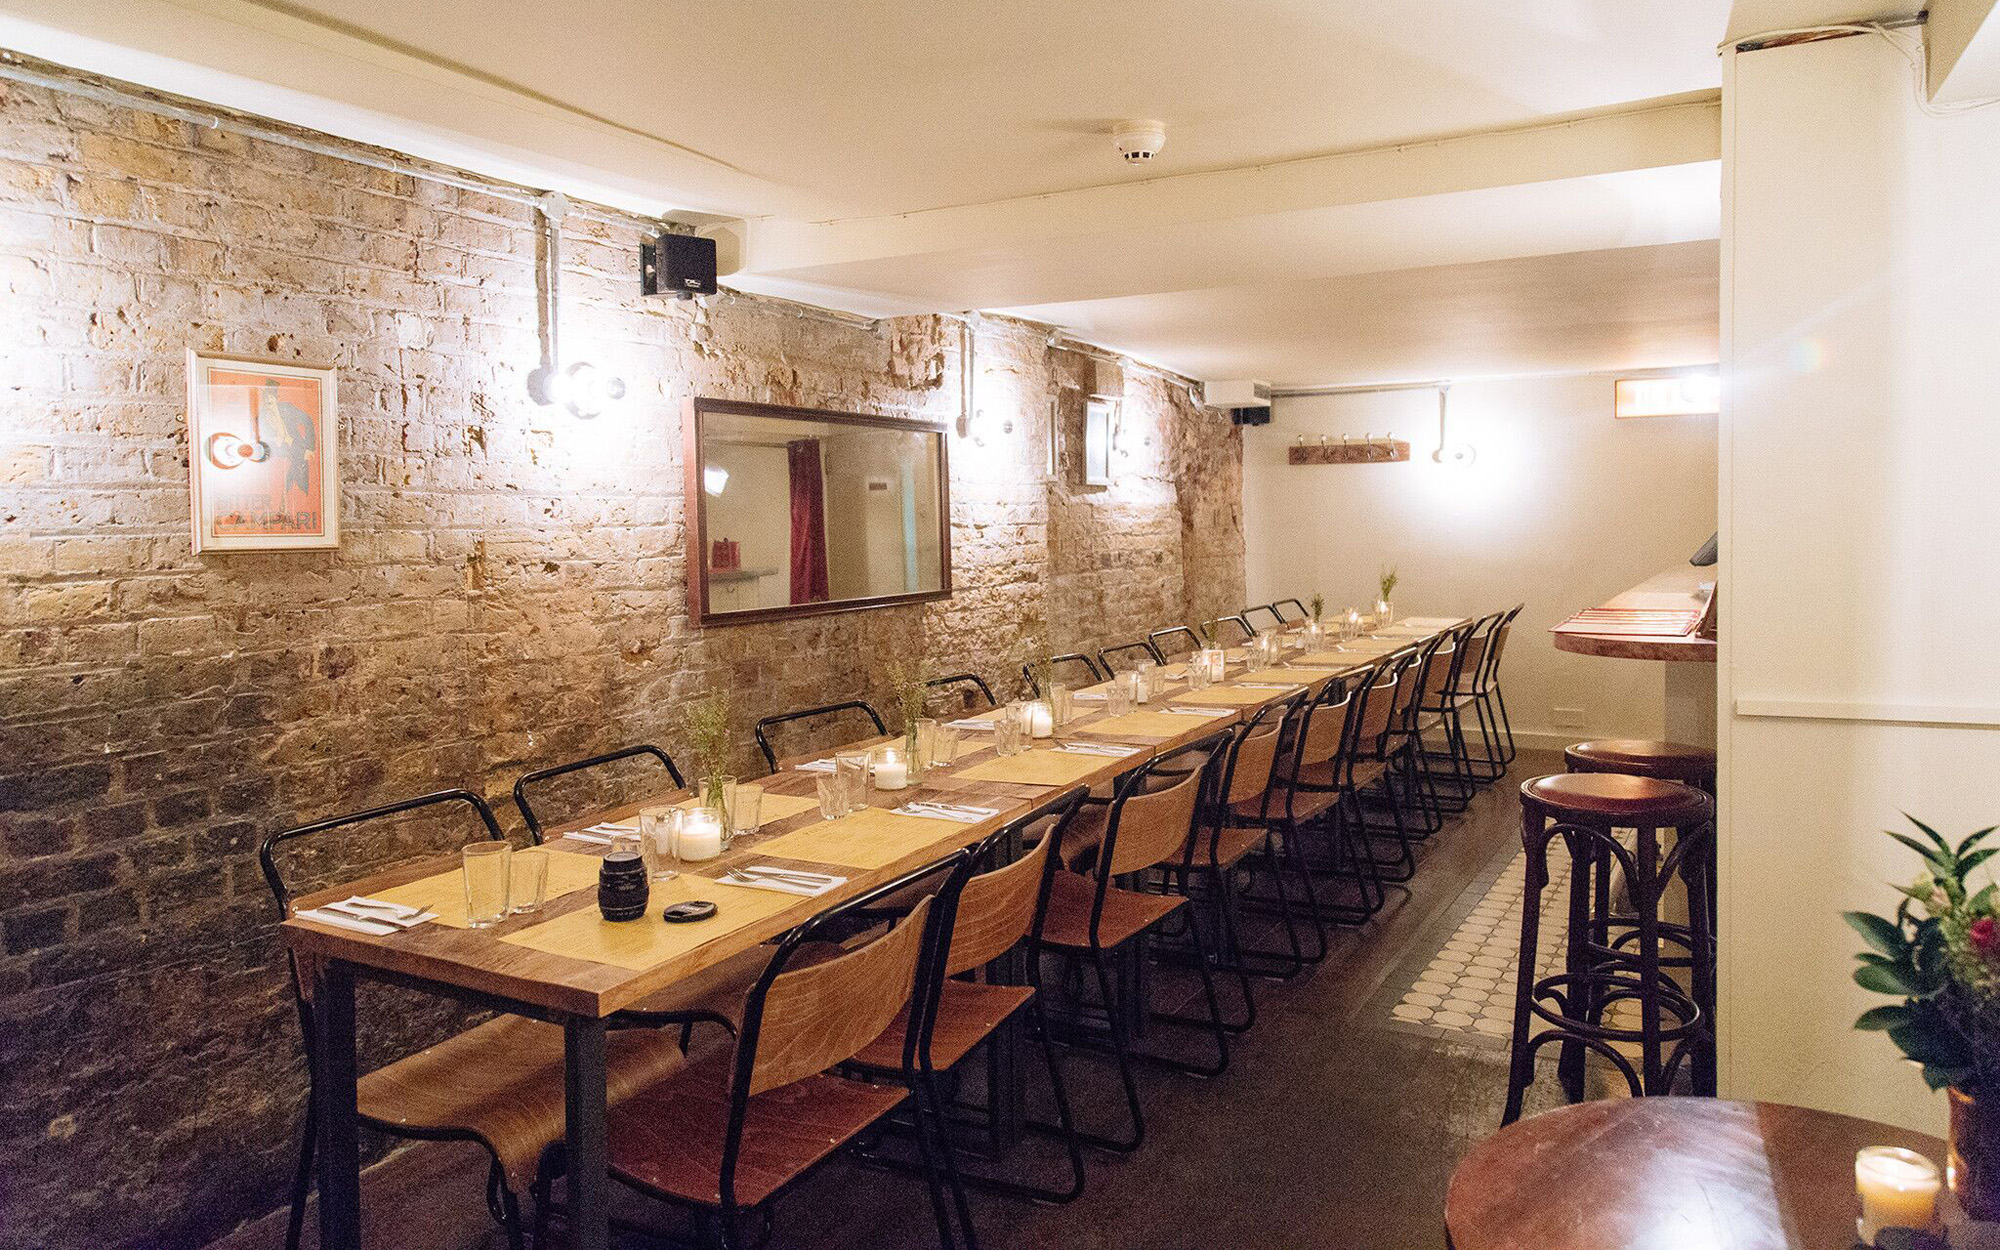 Polpo Soho london restaurants venues events private dining room hire